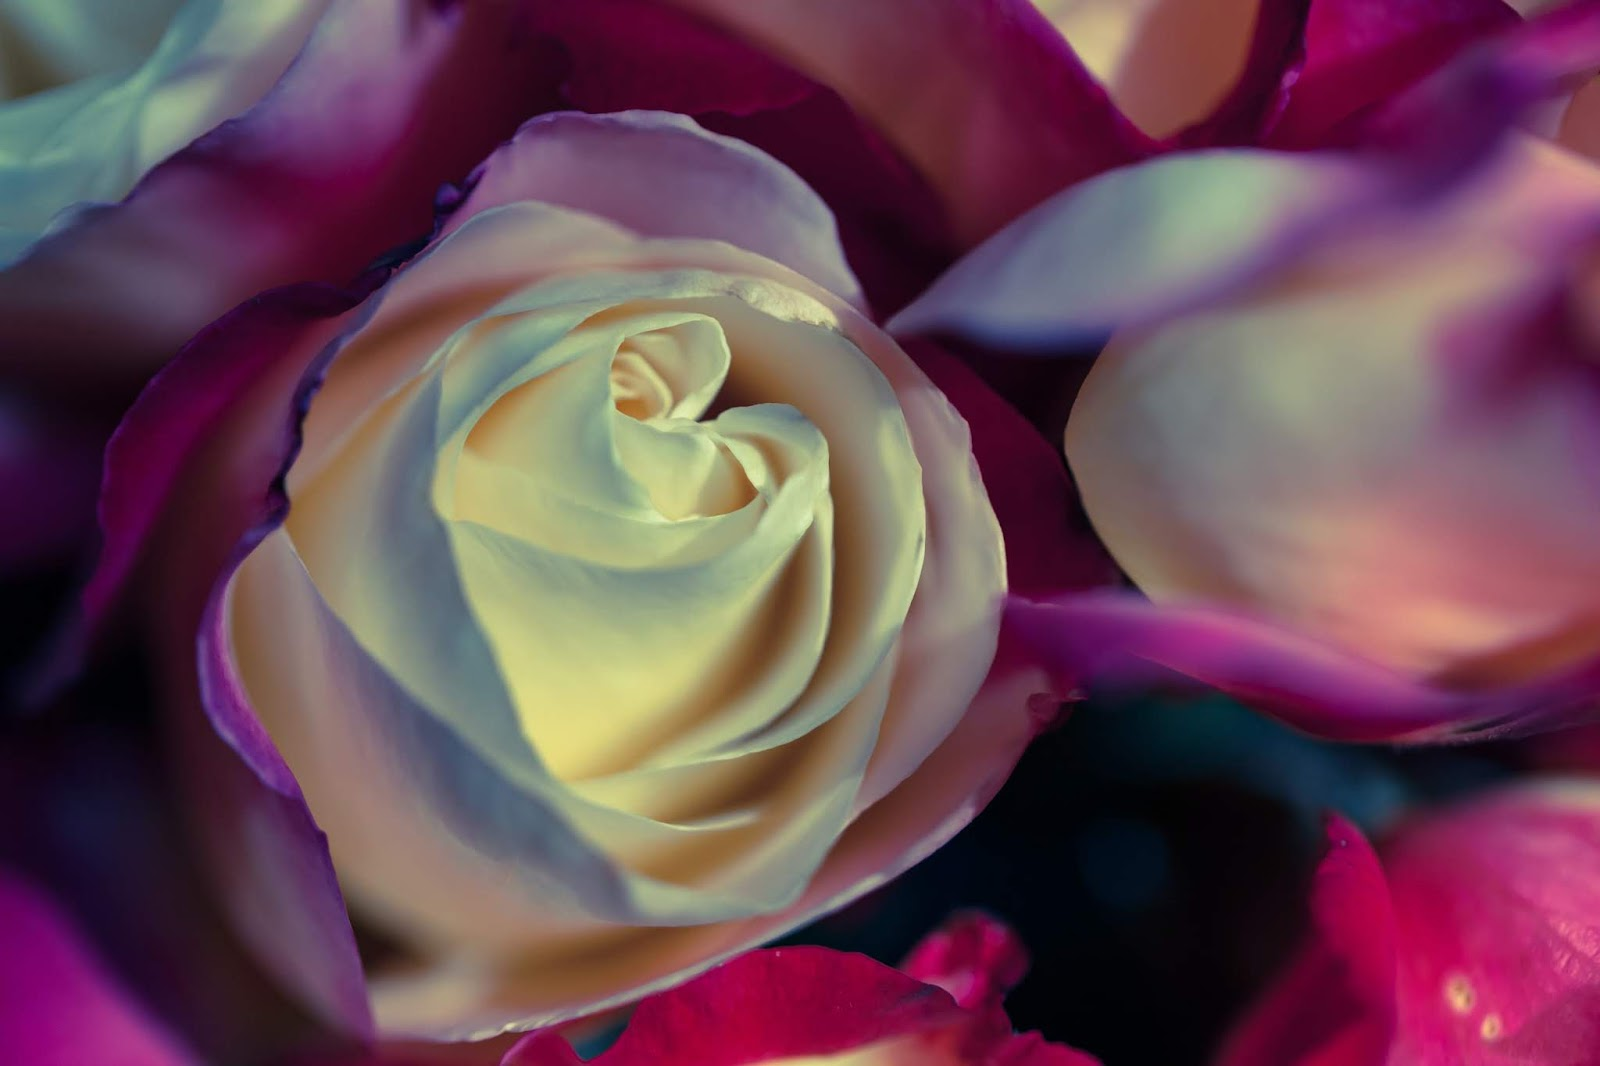 white and purple rose, rose images